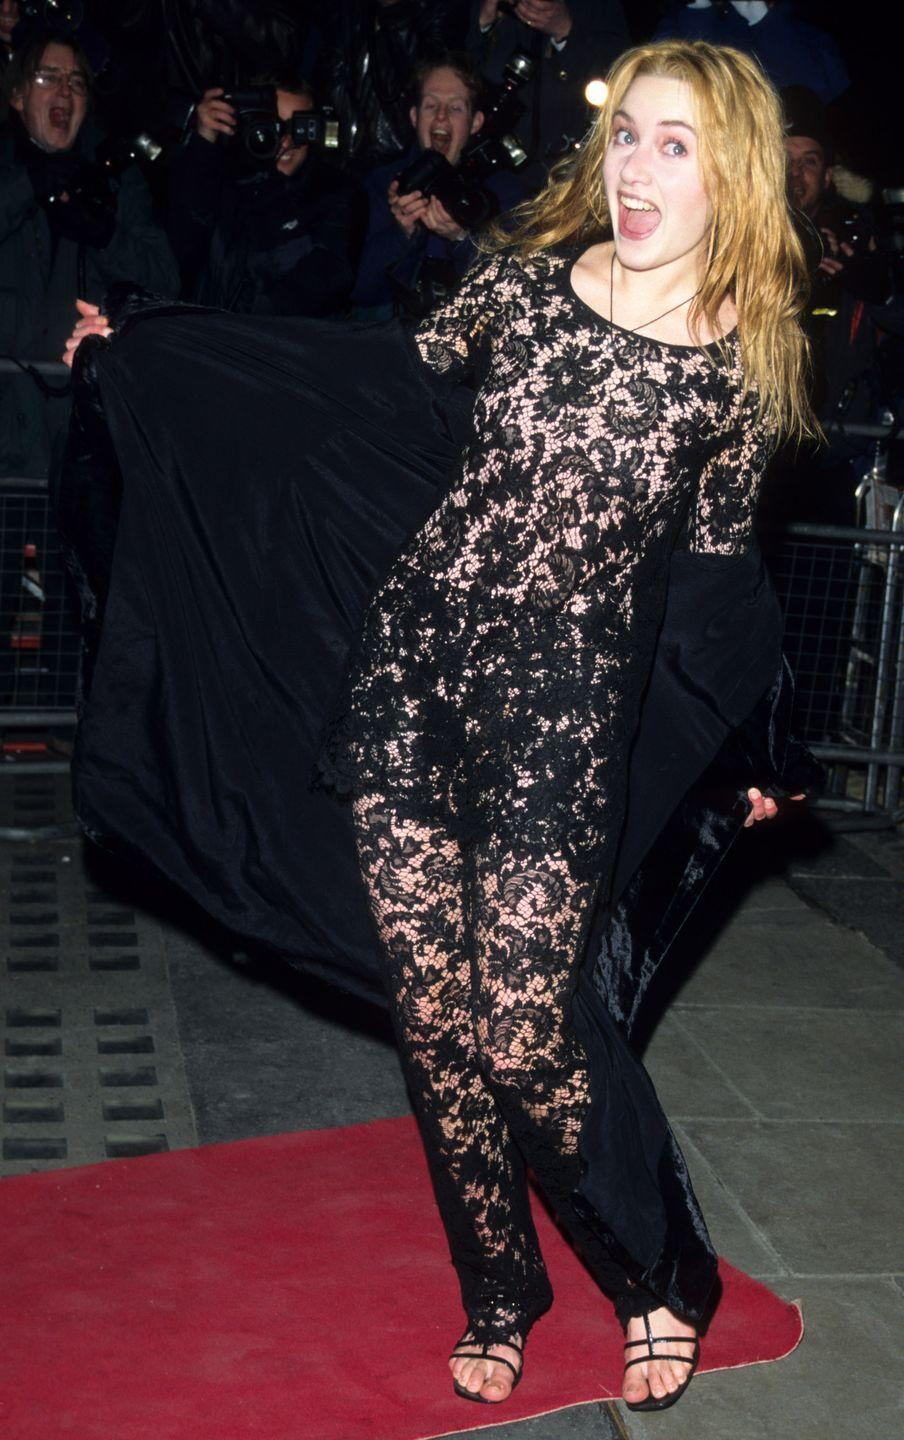 <p>The British actress arrived at the premiere of her first major film, <em>Sense and Sensibility,</em> in a daringly sheer lace jumpsuit. She was nominated for a Golden Globe Award for Best Supporting Actress for the role.</p>